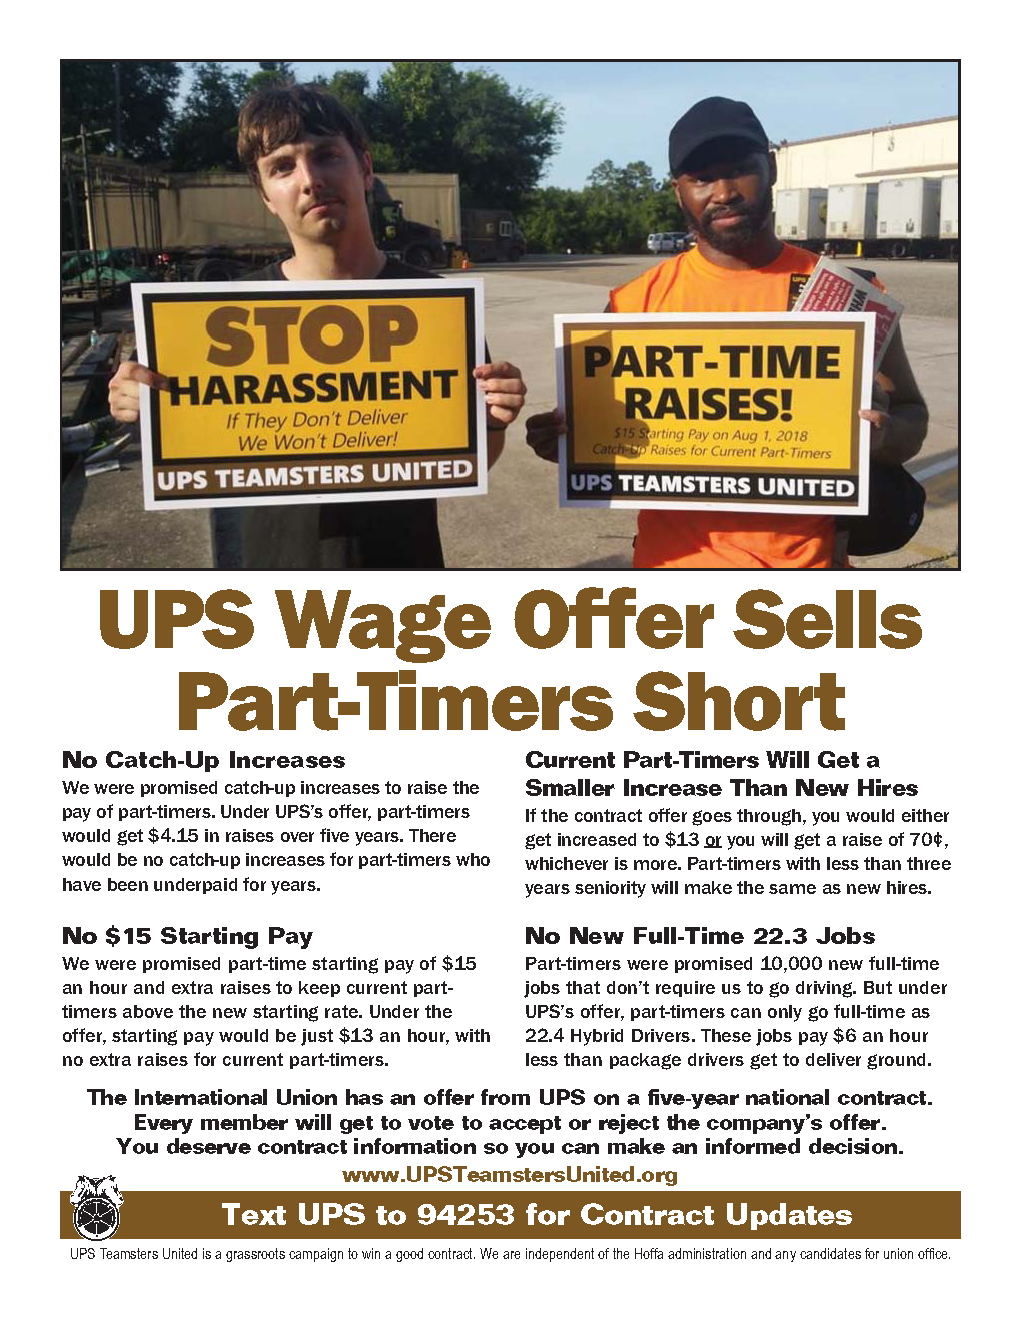 wage-offer-sells-parttimers-short.png